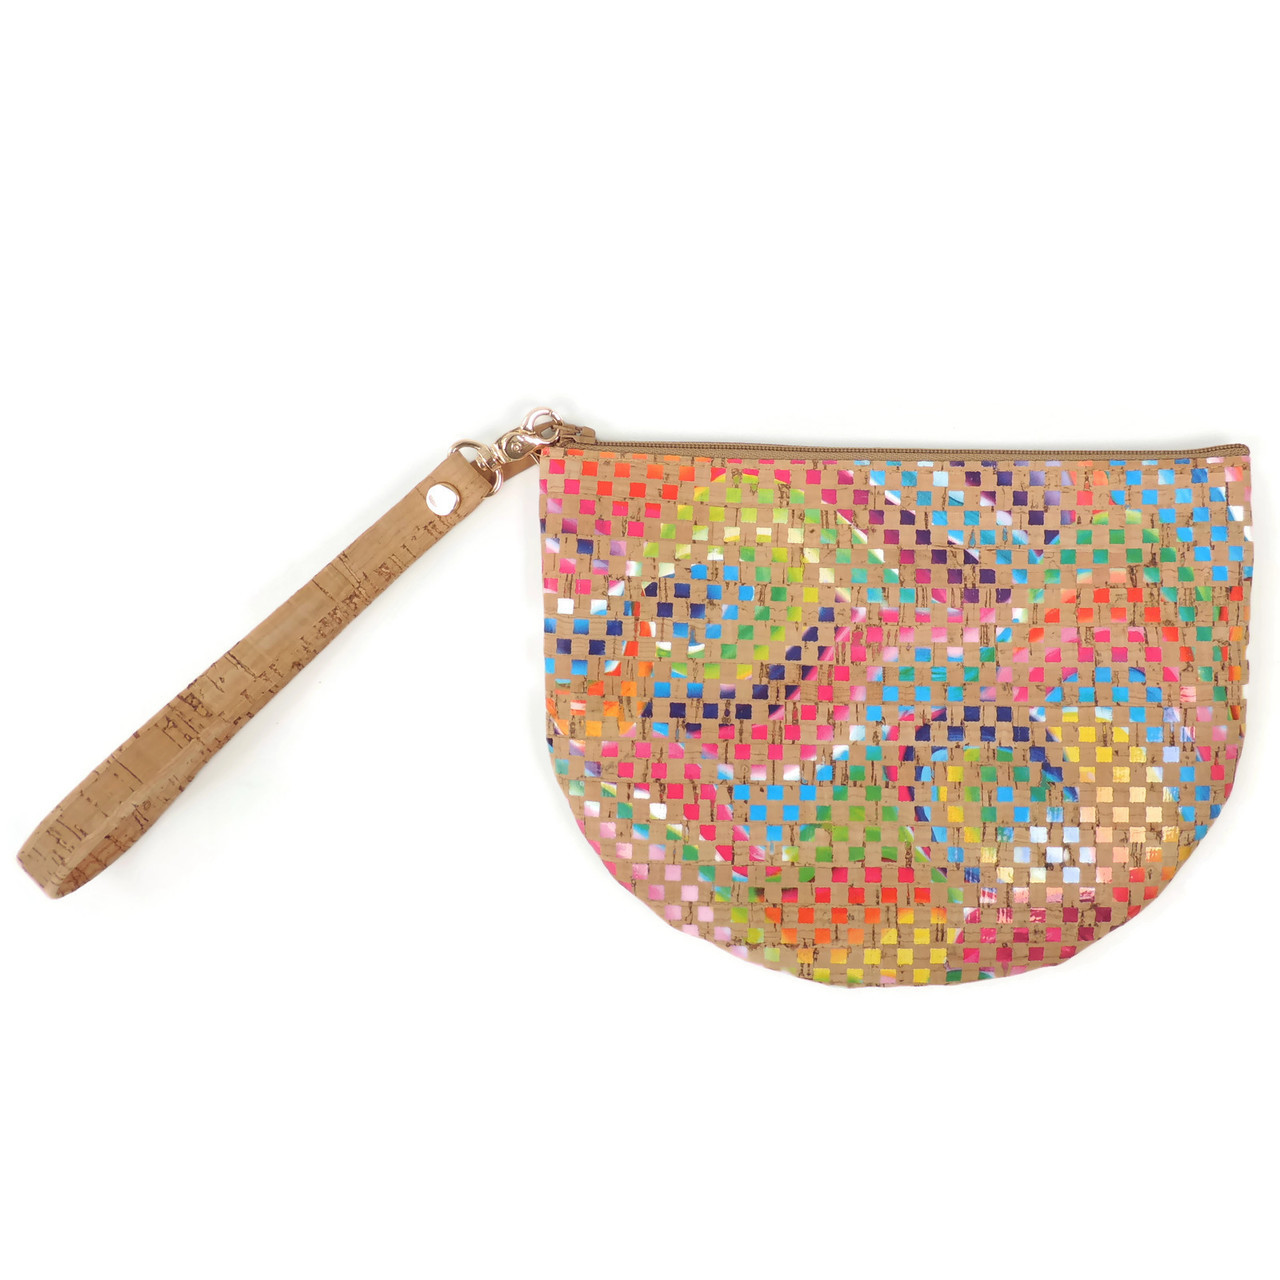 Half Moon Pouch in Mosaic Cork